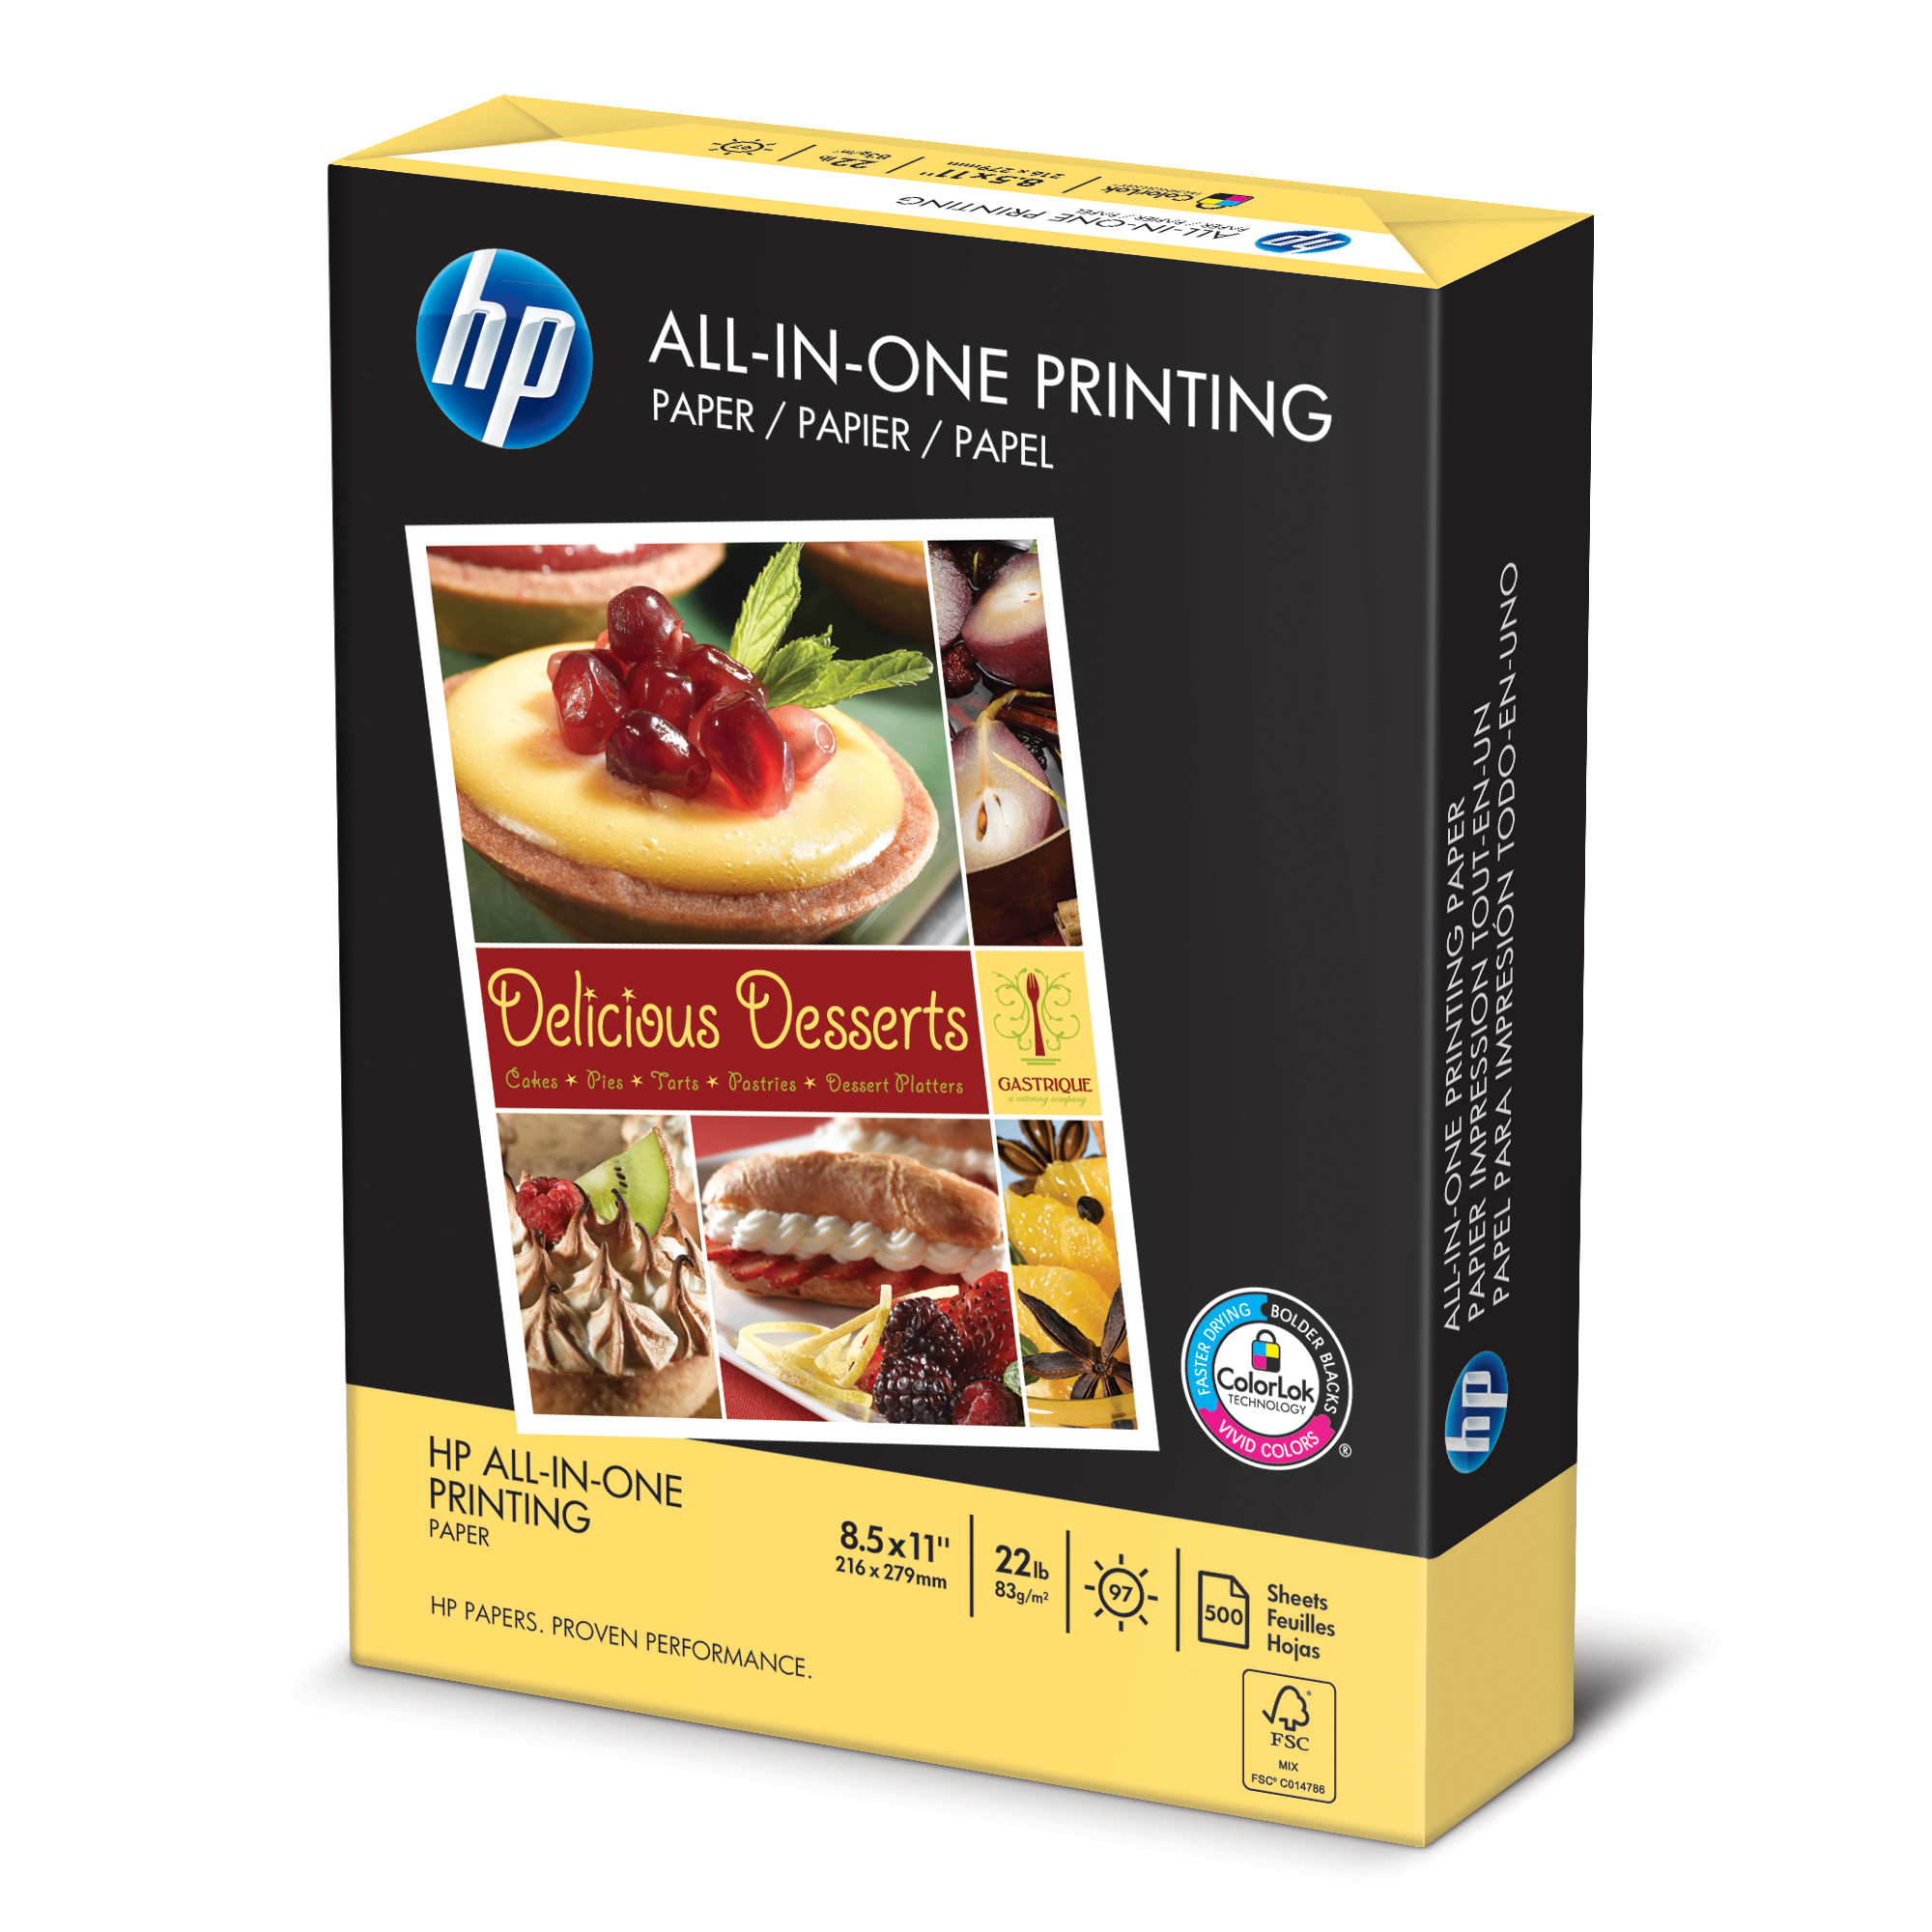 HP Paper, All-in-One Printing Paper Poly Wrap, 22 lb, 8.5 x 11, Letter, 96 Bright, 500 Sheets / 1 Ream (207010)